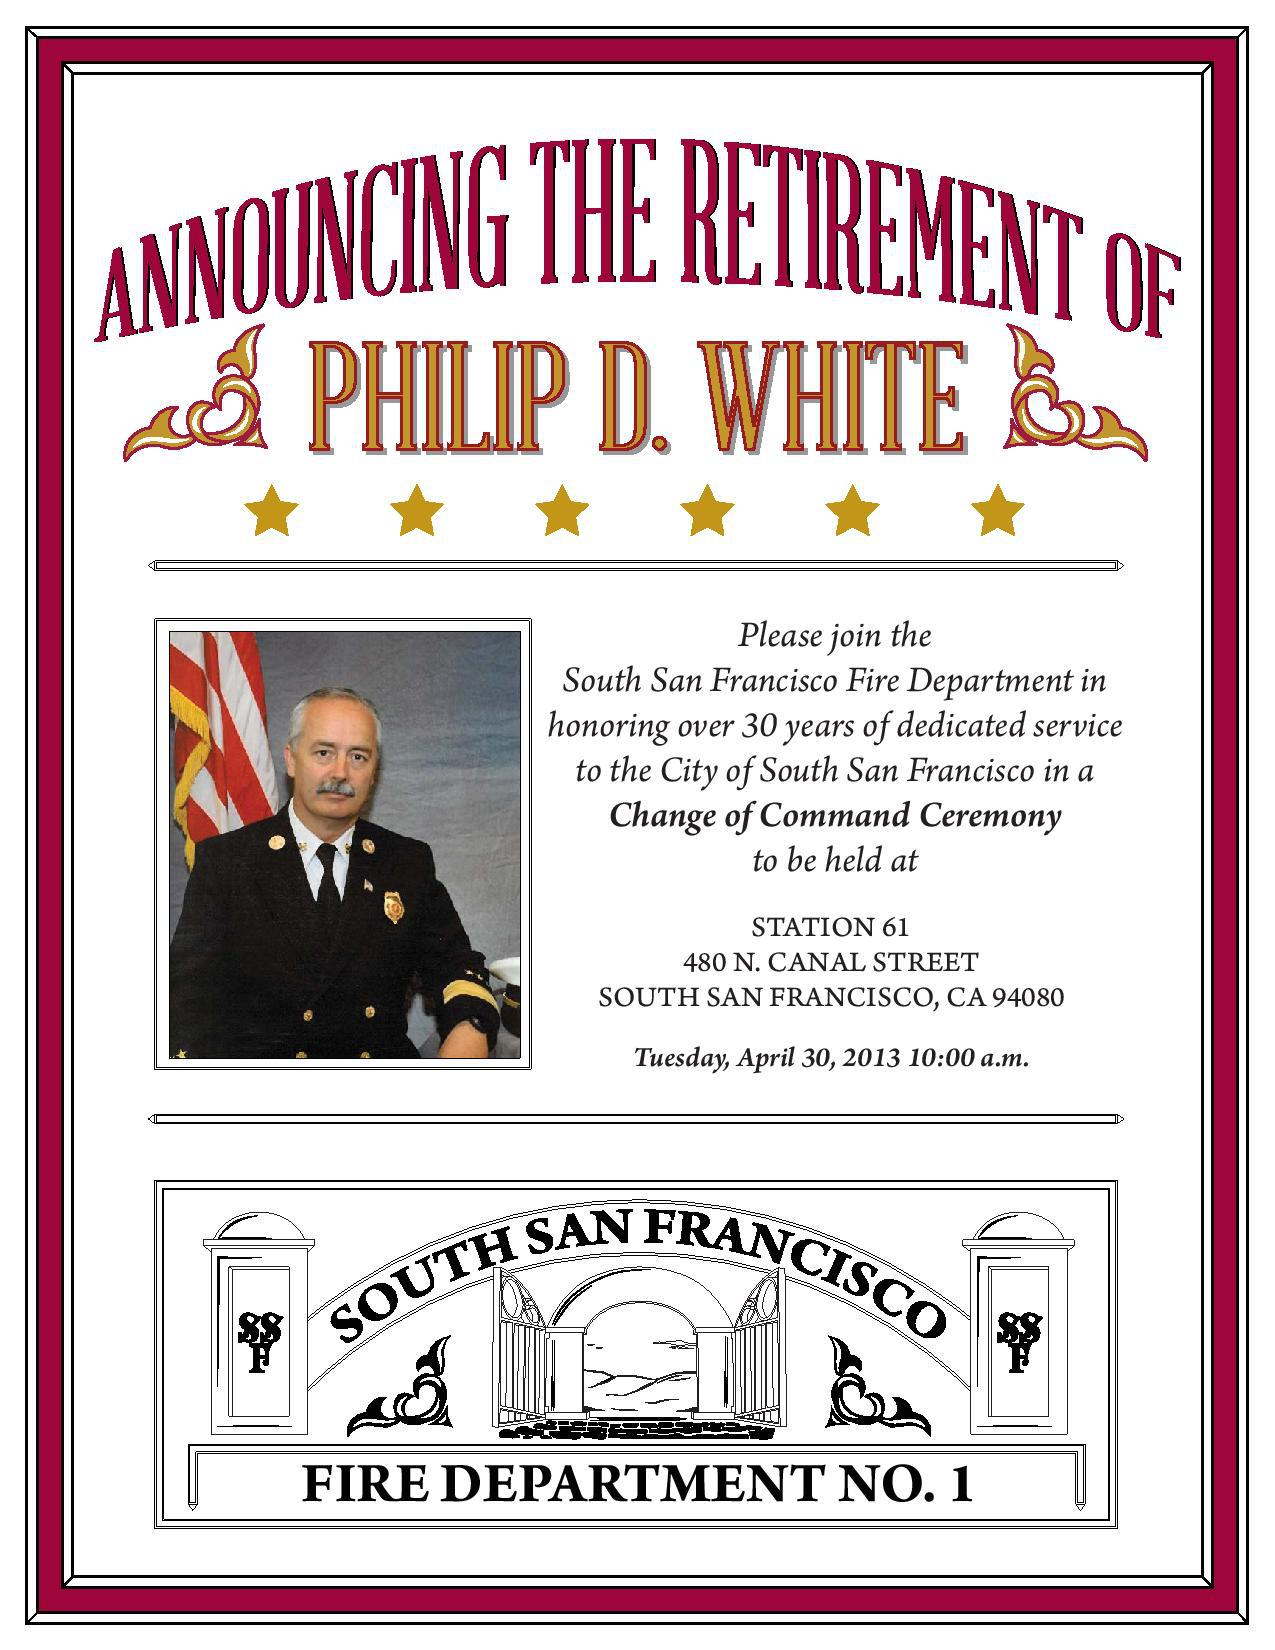 Fire Chief Phil White to be honored as he retires